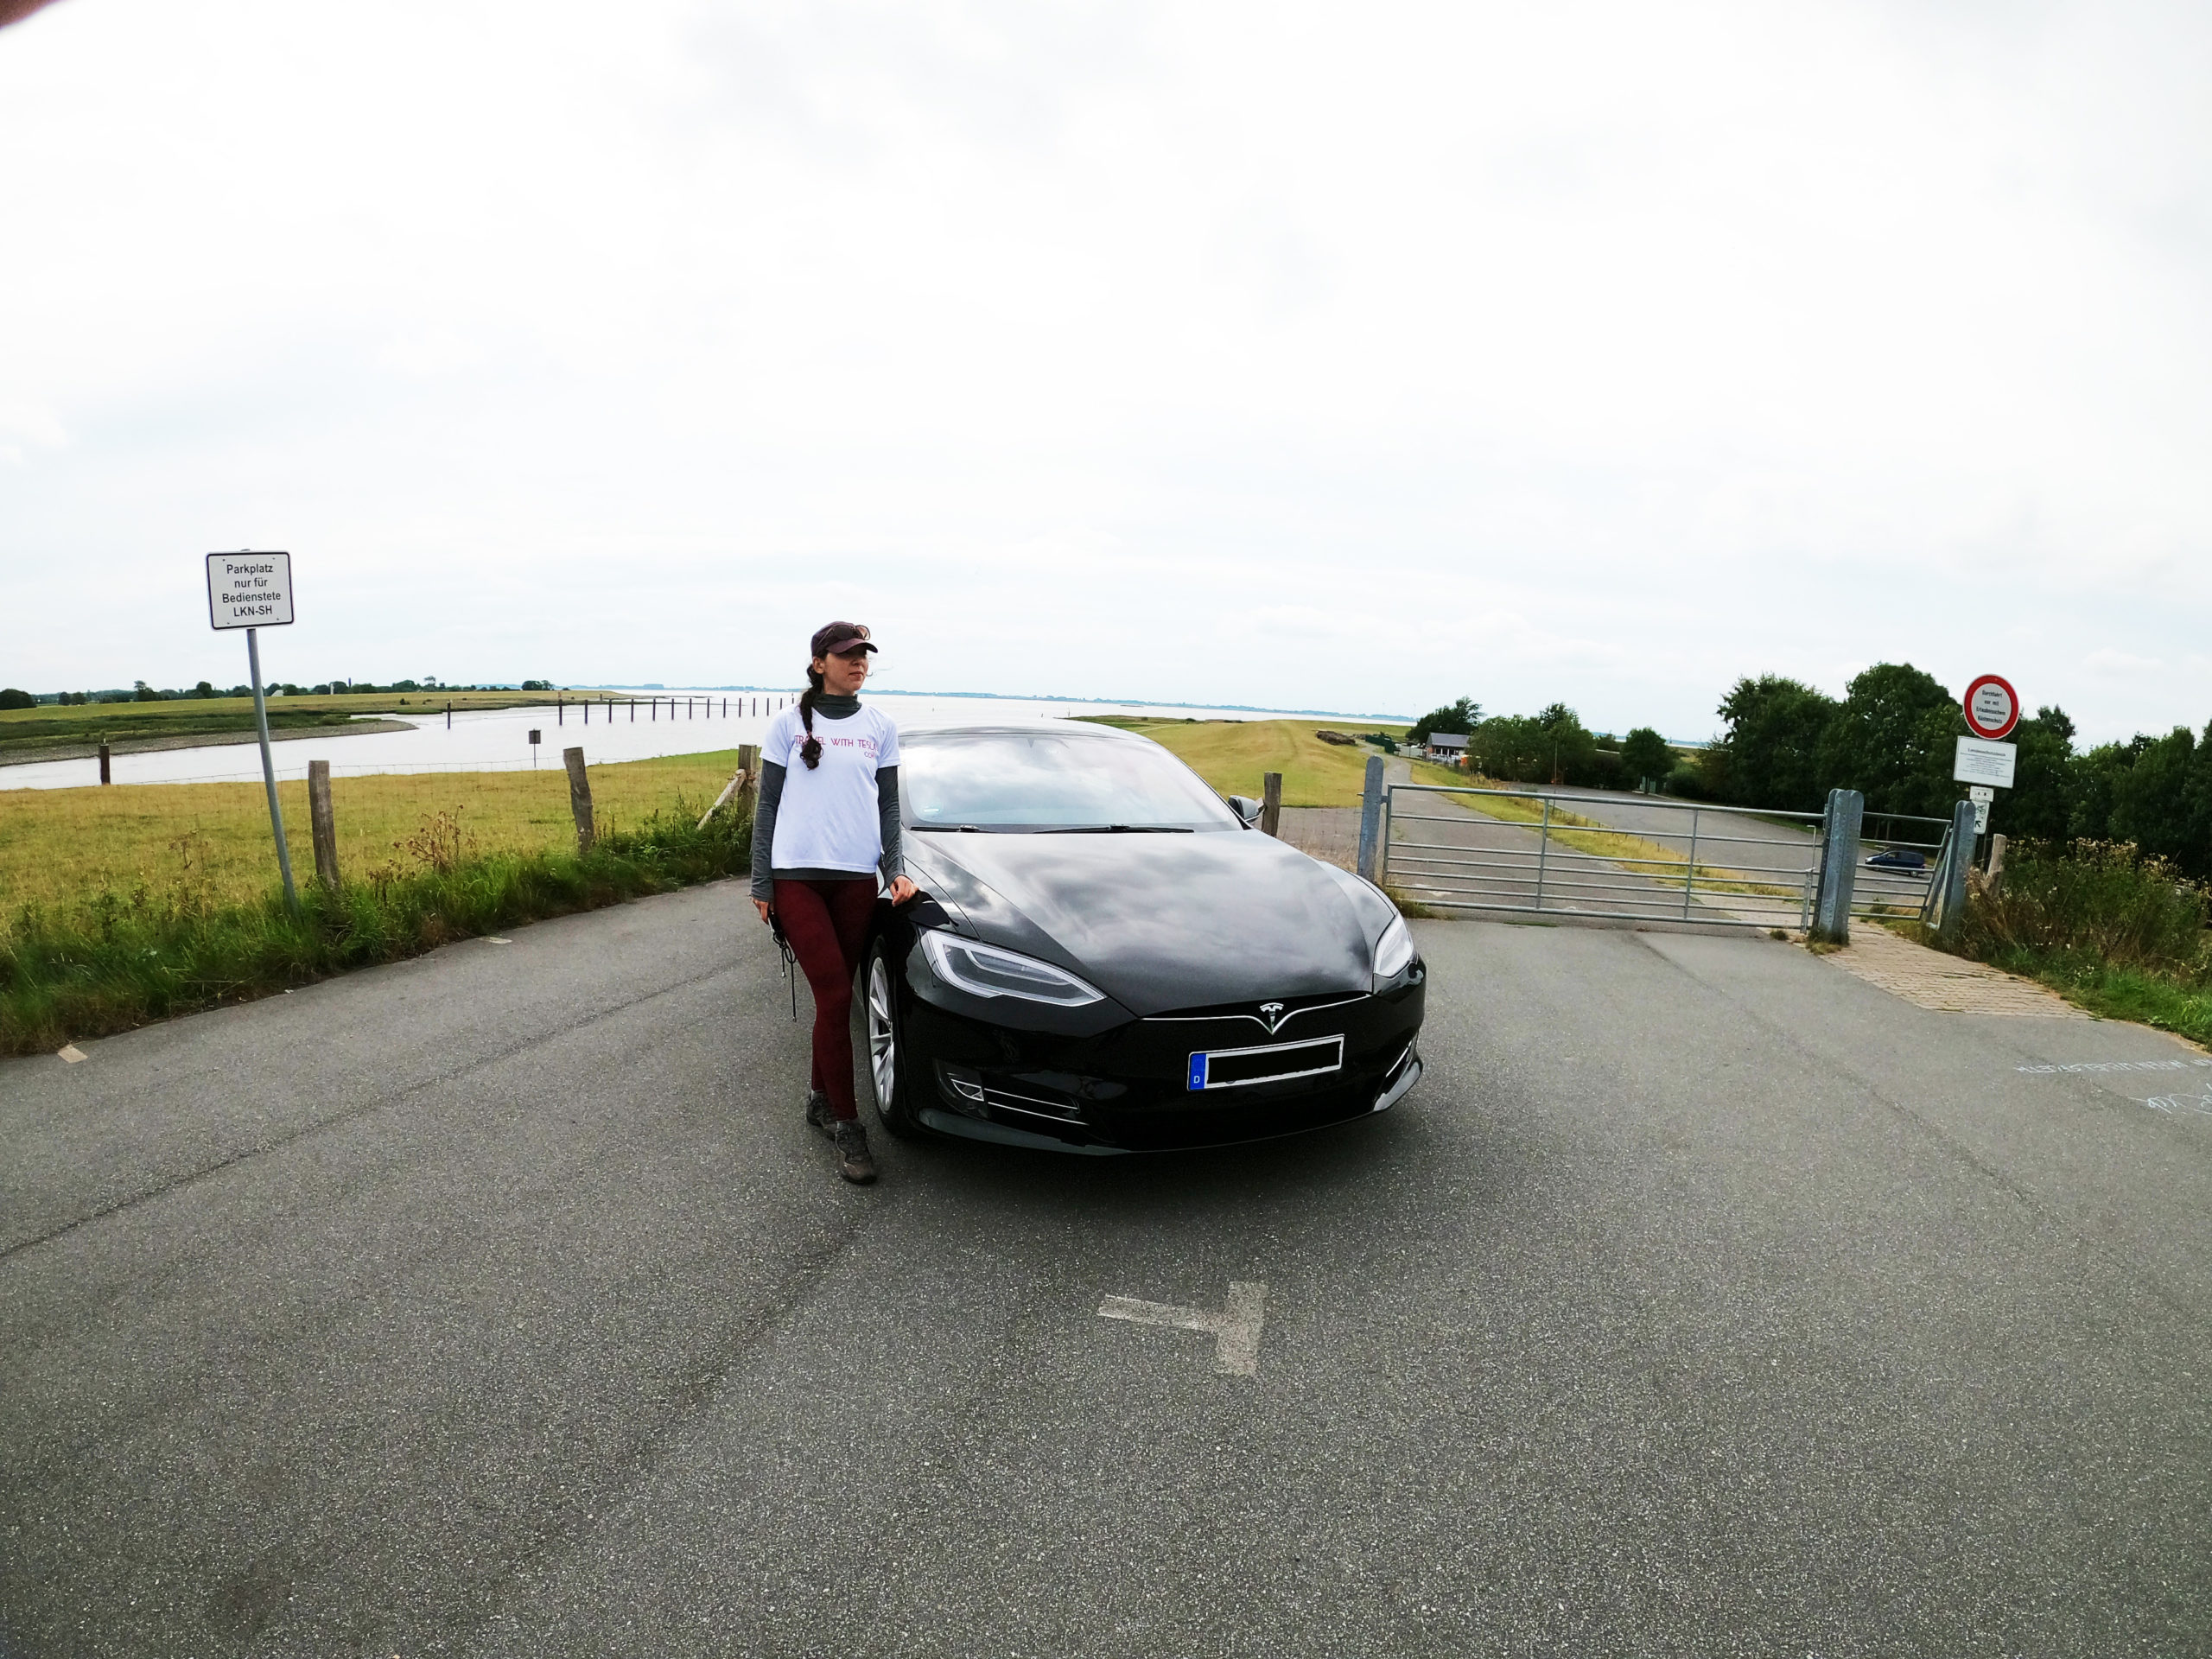 Mihaela from Move more. Eat more and the Tesla Model S near the flood barrier on the river Stör